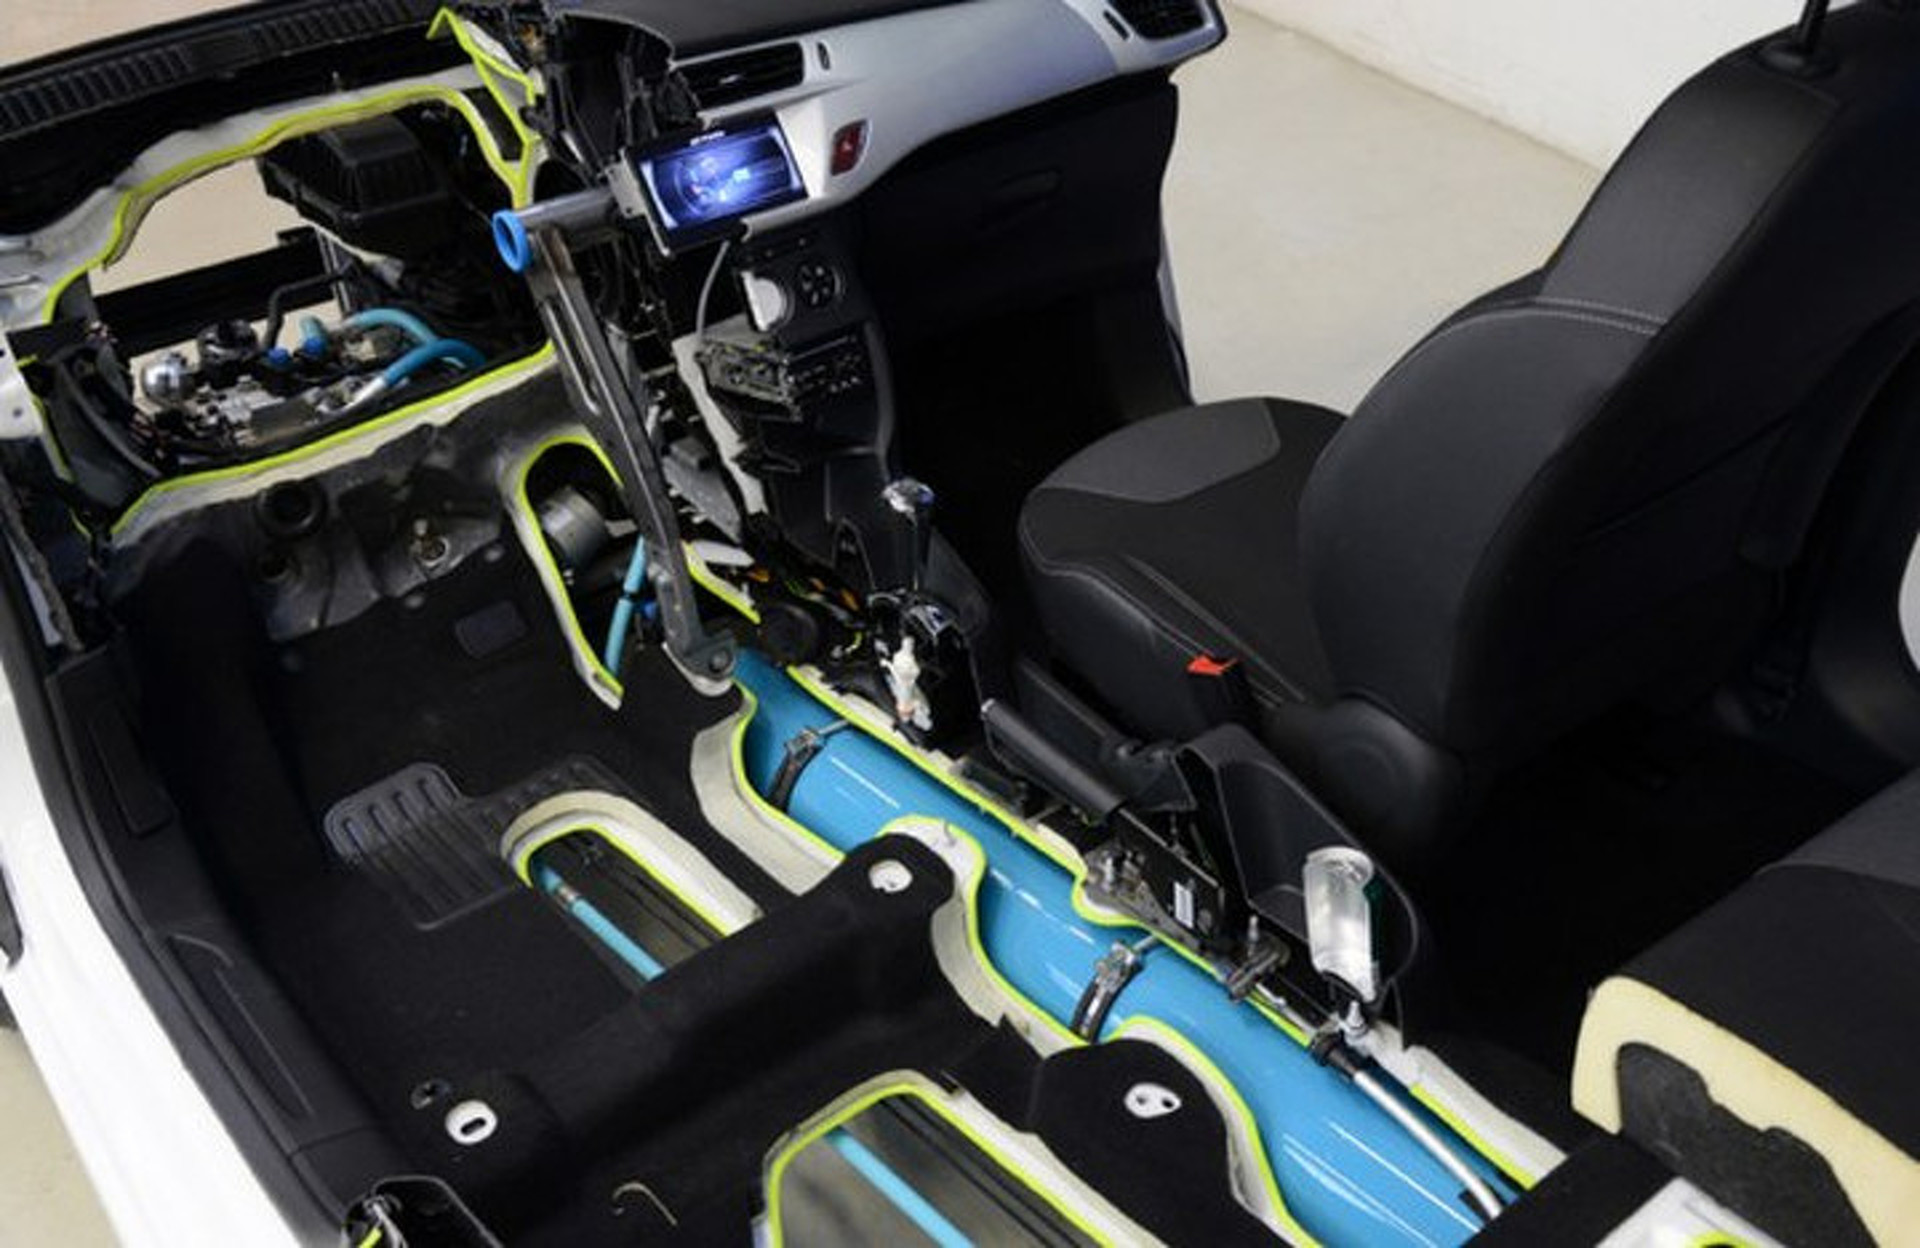 Peugeot's Innovative Compressed Air Hybrid Actually Coming to Market